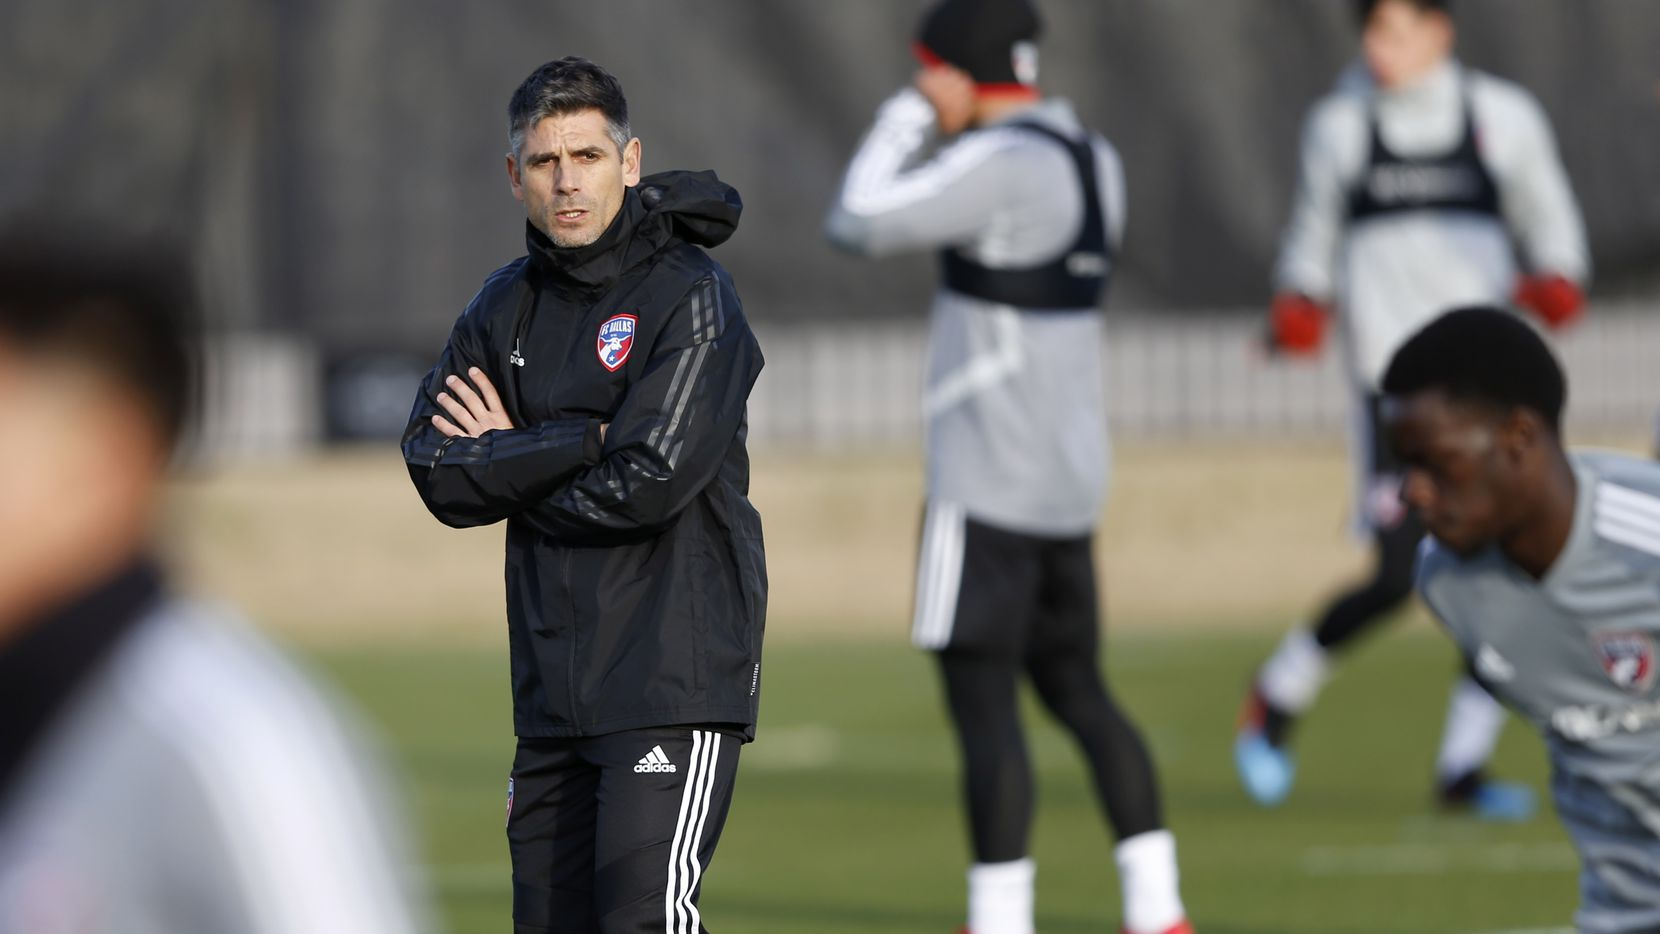 FC Dallas head coach Luchi Gonzalez looks on during the first day of training camp at Toyota Stadium on AdvoCare Field 1 in Frisco, Texas on Monday, January 21, 2019. (Vernon Bryant/The Dallas Morning News)